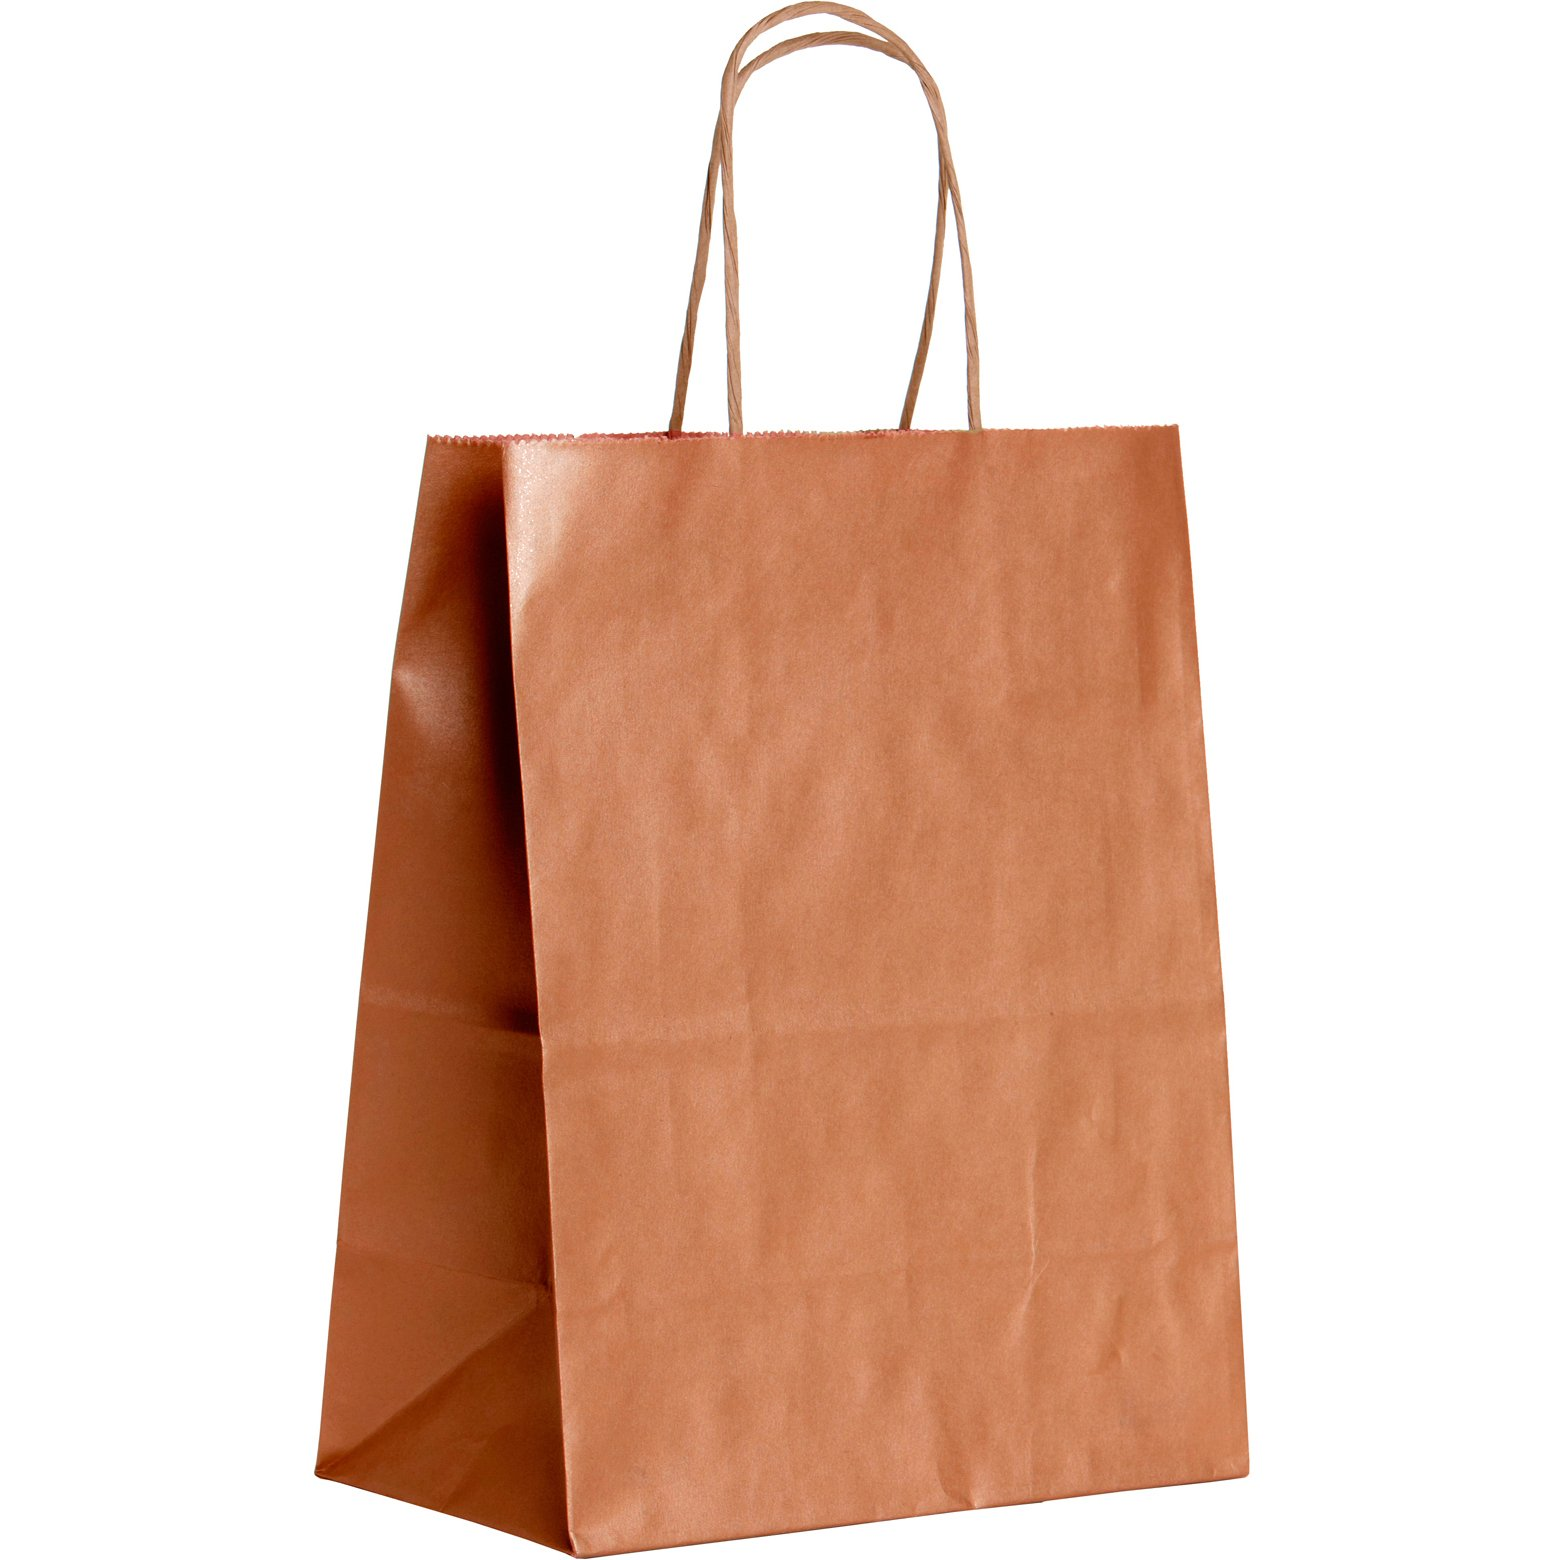 Jillson Roberts BMK955.1 Bulk 250-Count Medium 8'' x 10.5'' x 4.75'' Recycled Kraft Bags Available in 20 Colors, Metallic Copper